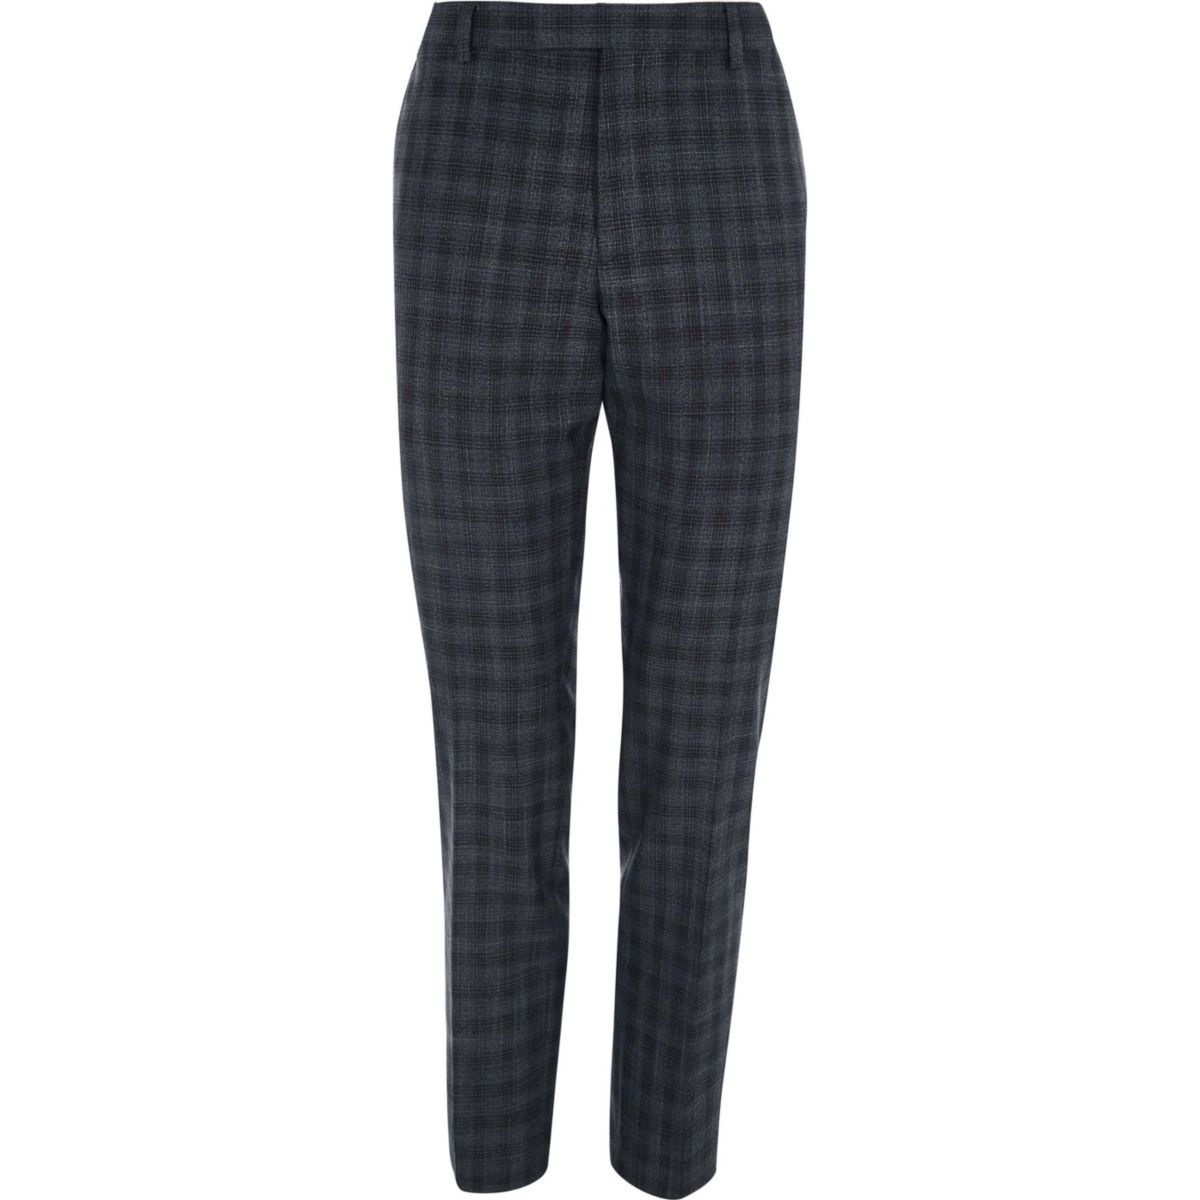 Grey shadow check skinny fit suit pants